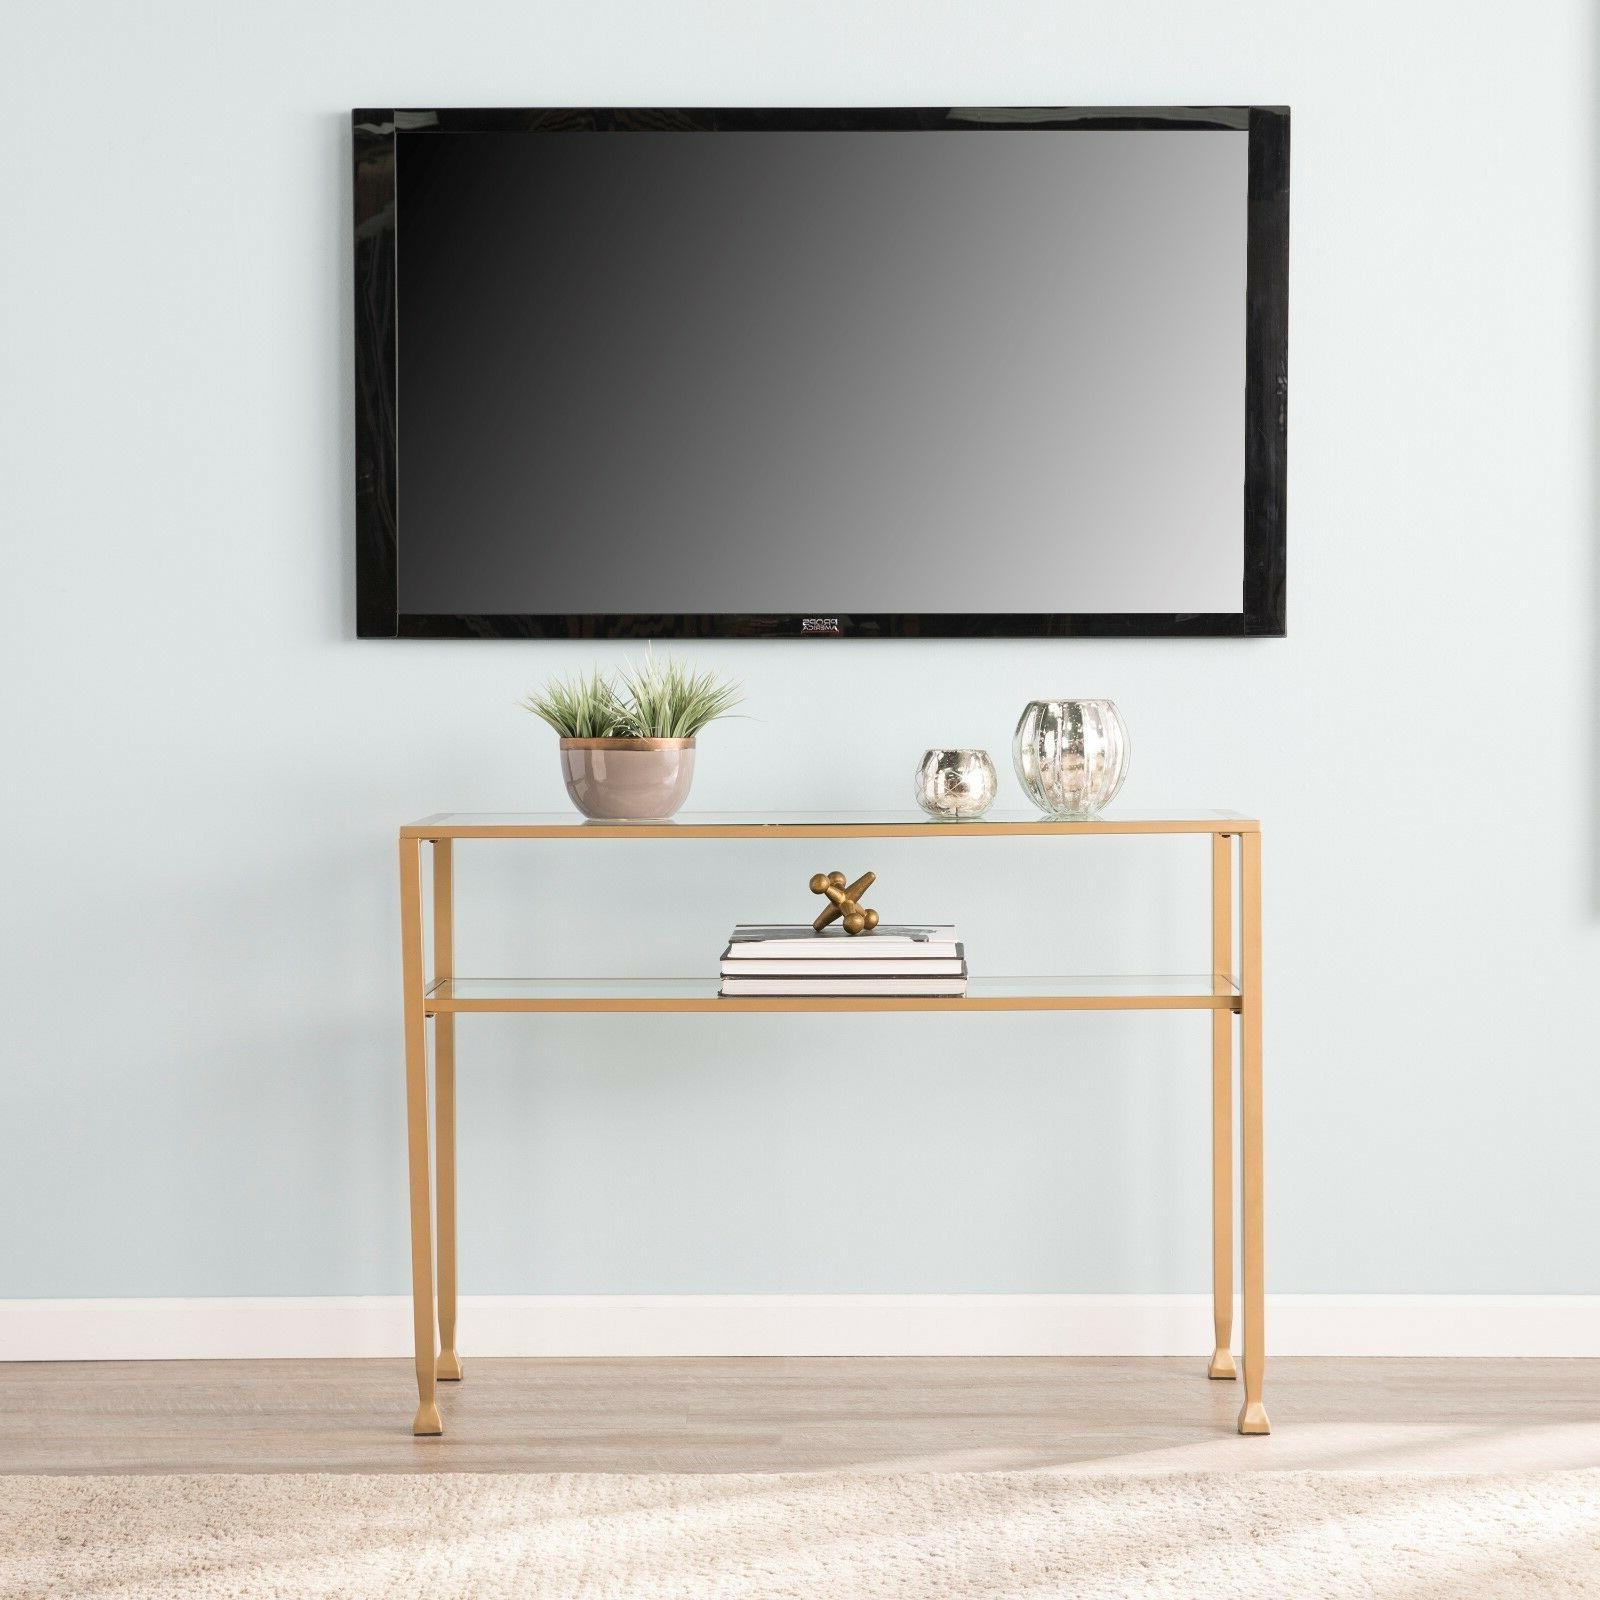 JST37575 GOLD GLASS CONSOLE